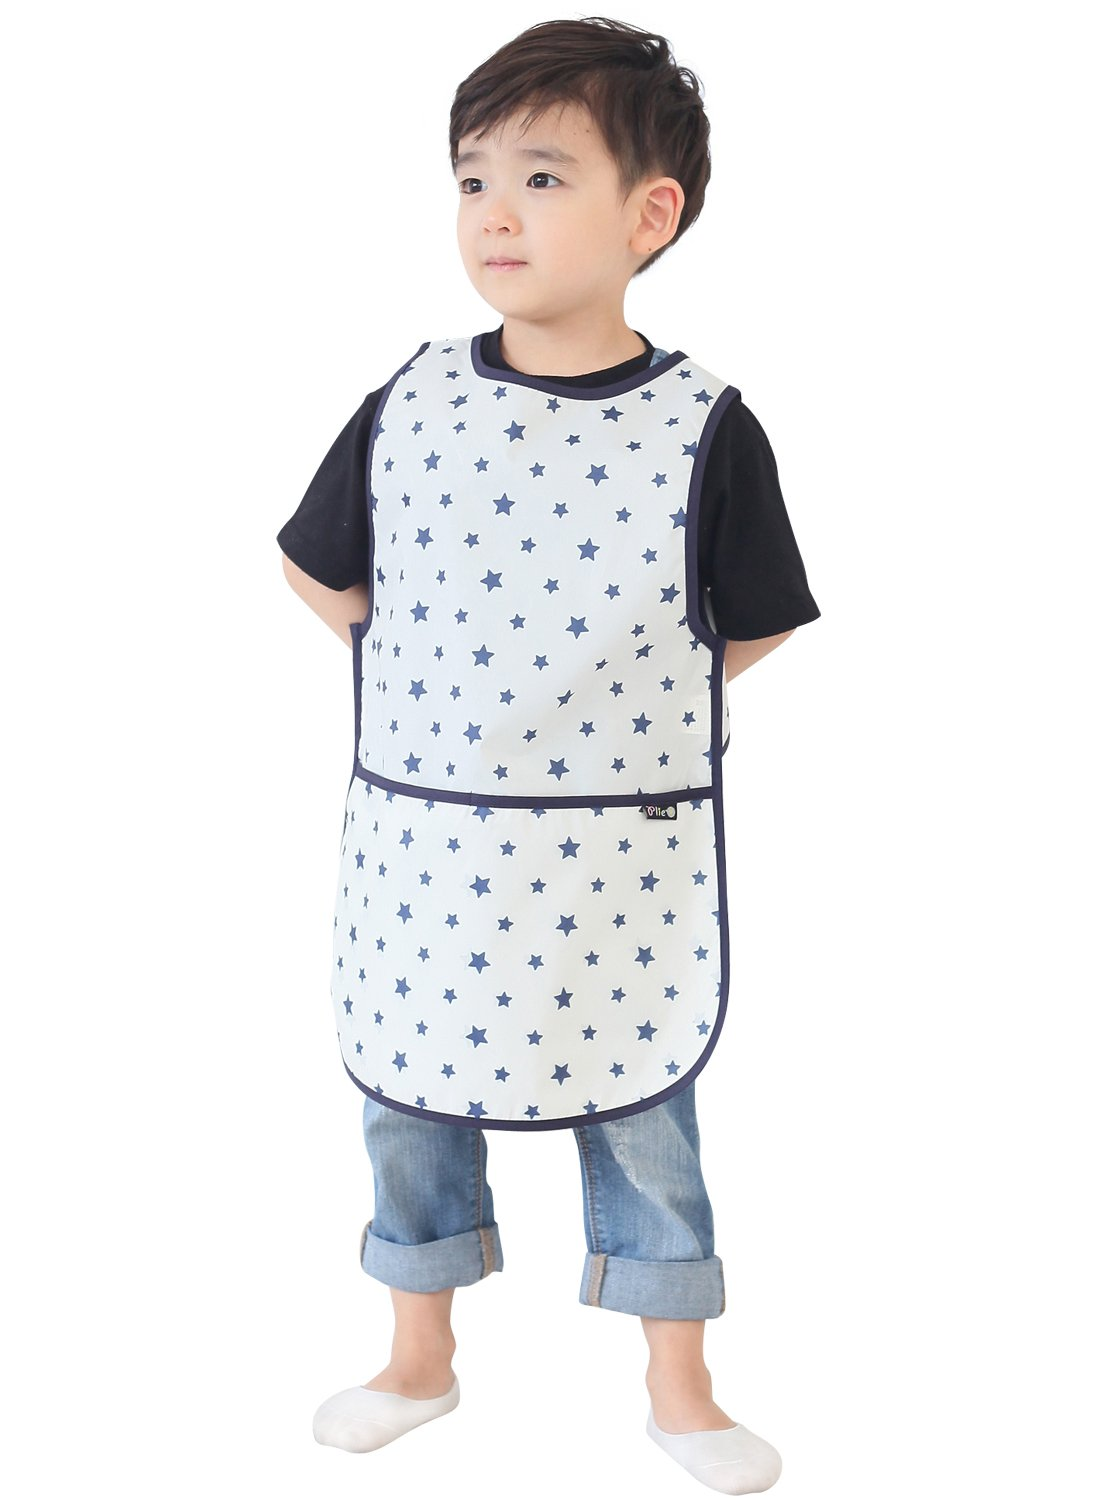 Plie Children Waterproof Sleeveless Art Smock Apron with Pockets, Pink Check (15-M) MIN01-15-M